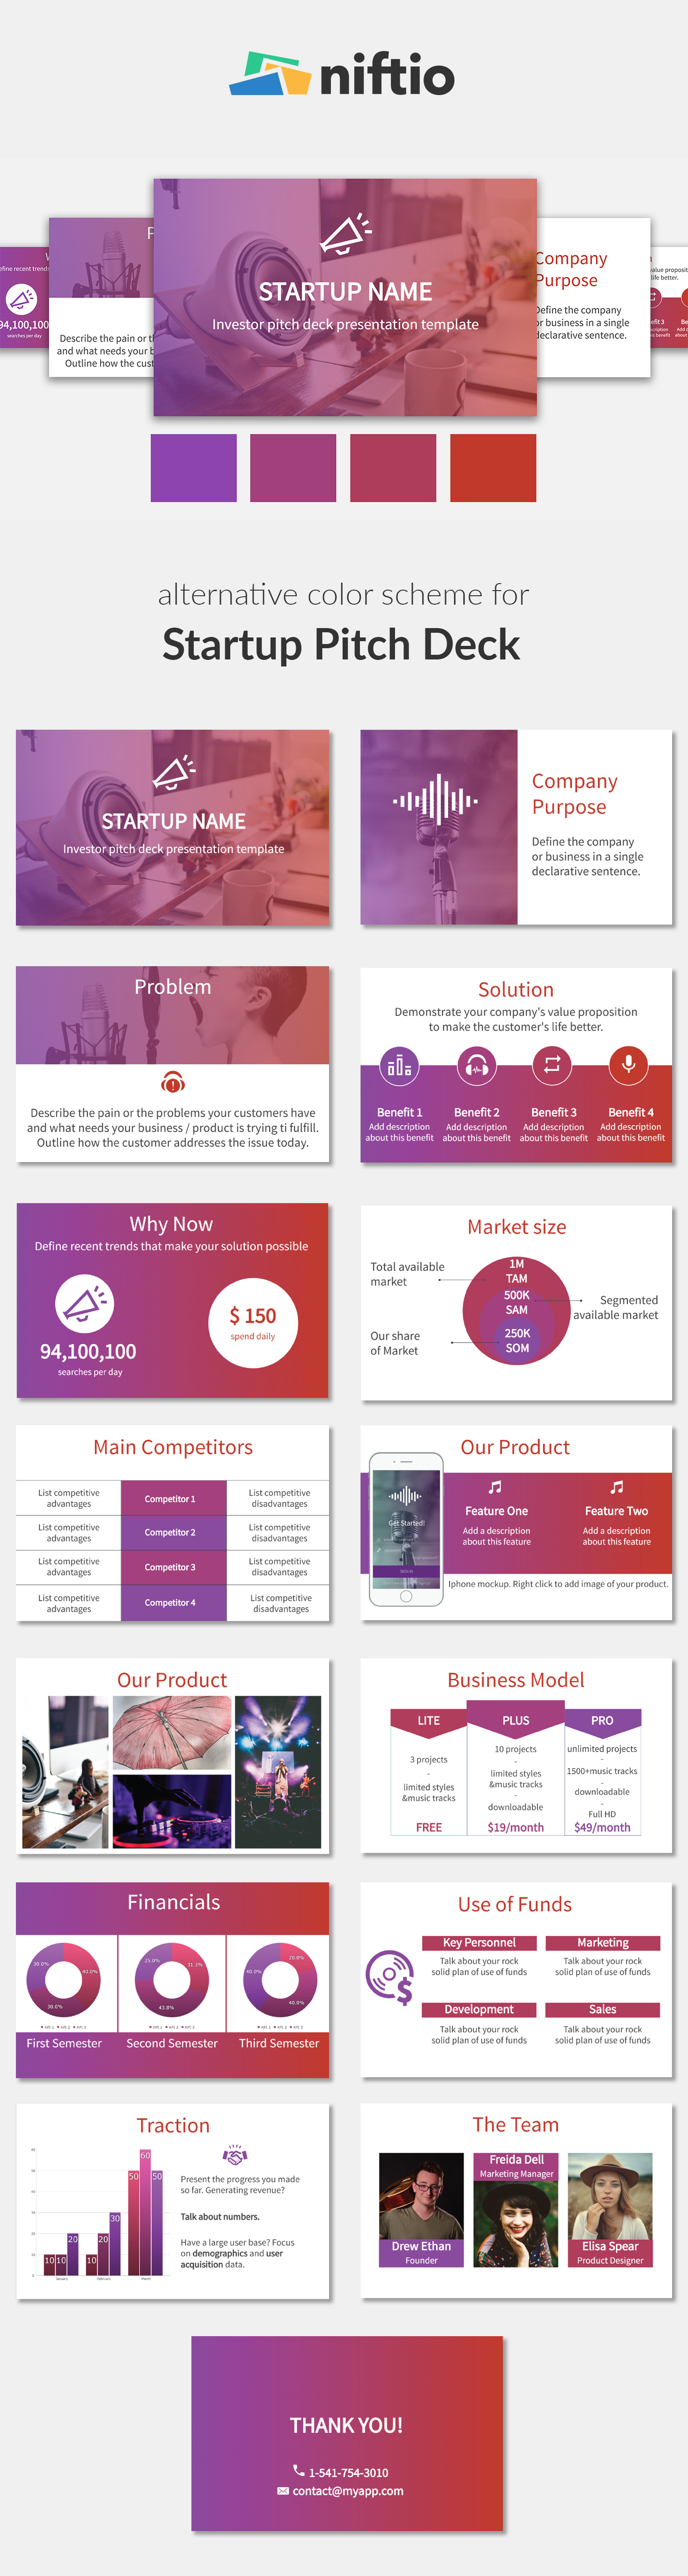 Business Presentation Template Alternative Color Scheme Bold - Awesome free pitch deck template scheme